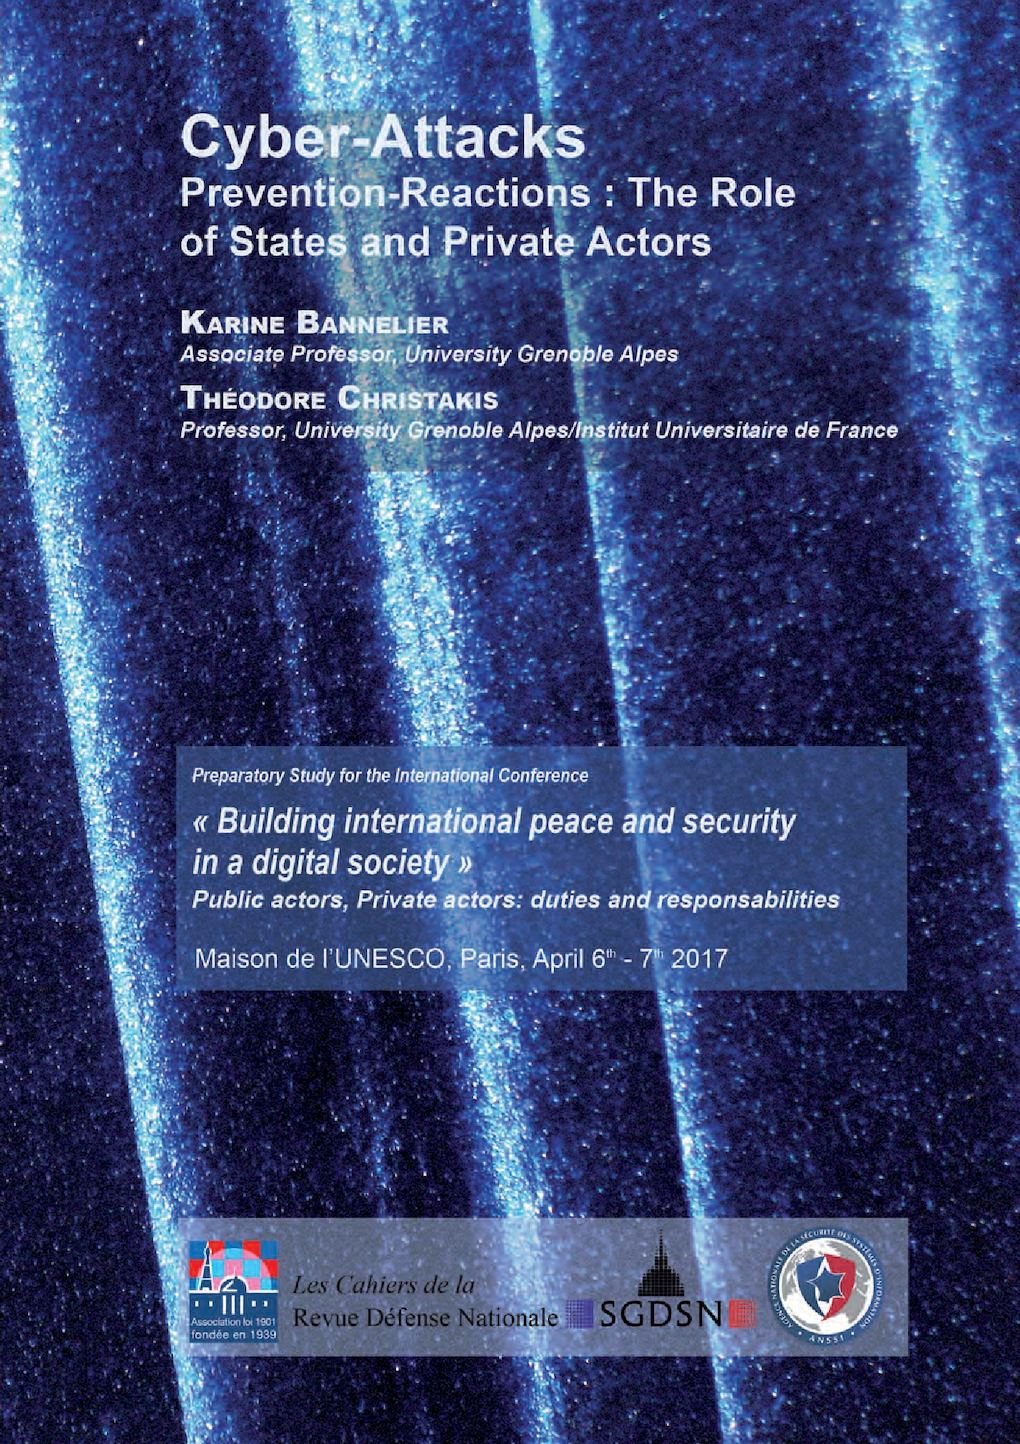 Calaméo - Cyber-Attacks - Prevention-Reactions: The Role of States